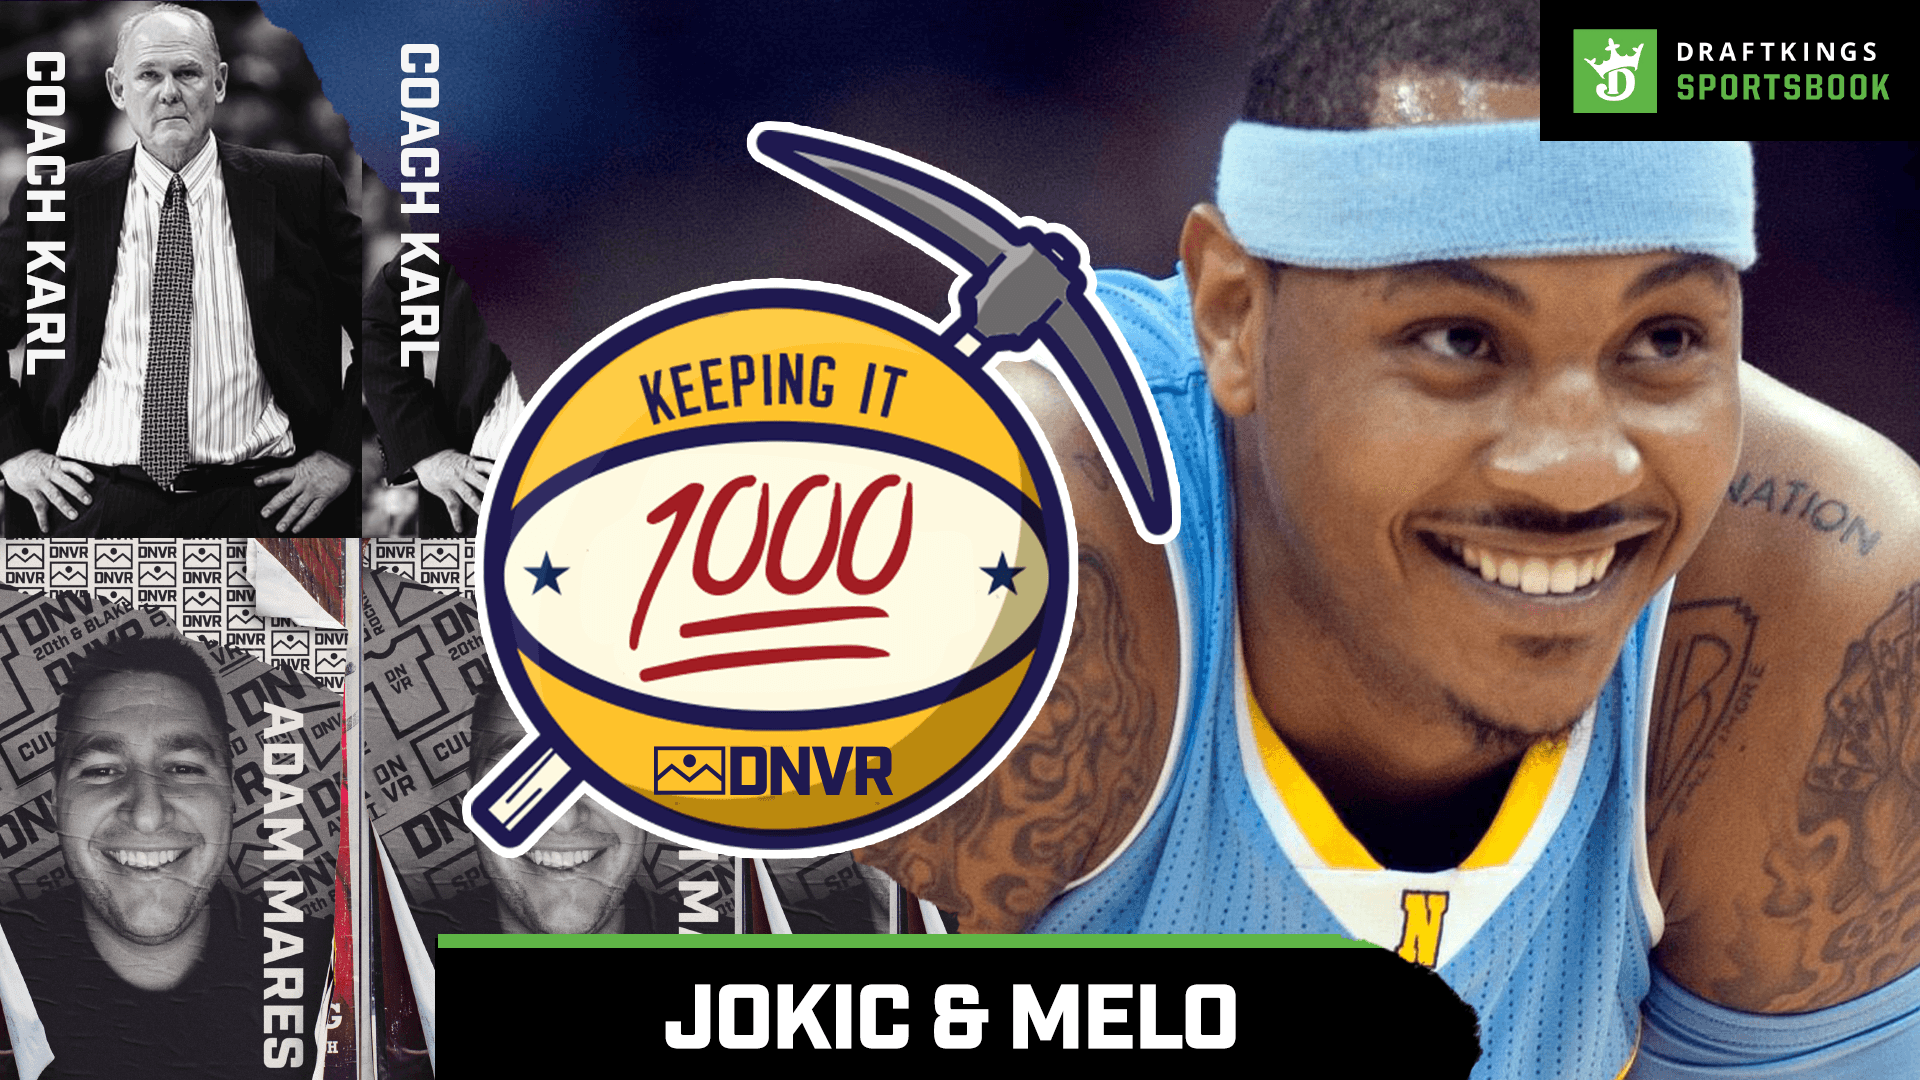 Nikola Jokic and Carmelo Anthony